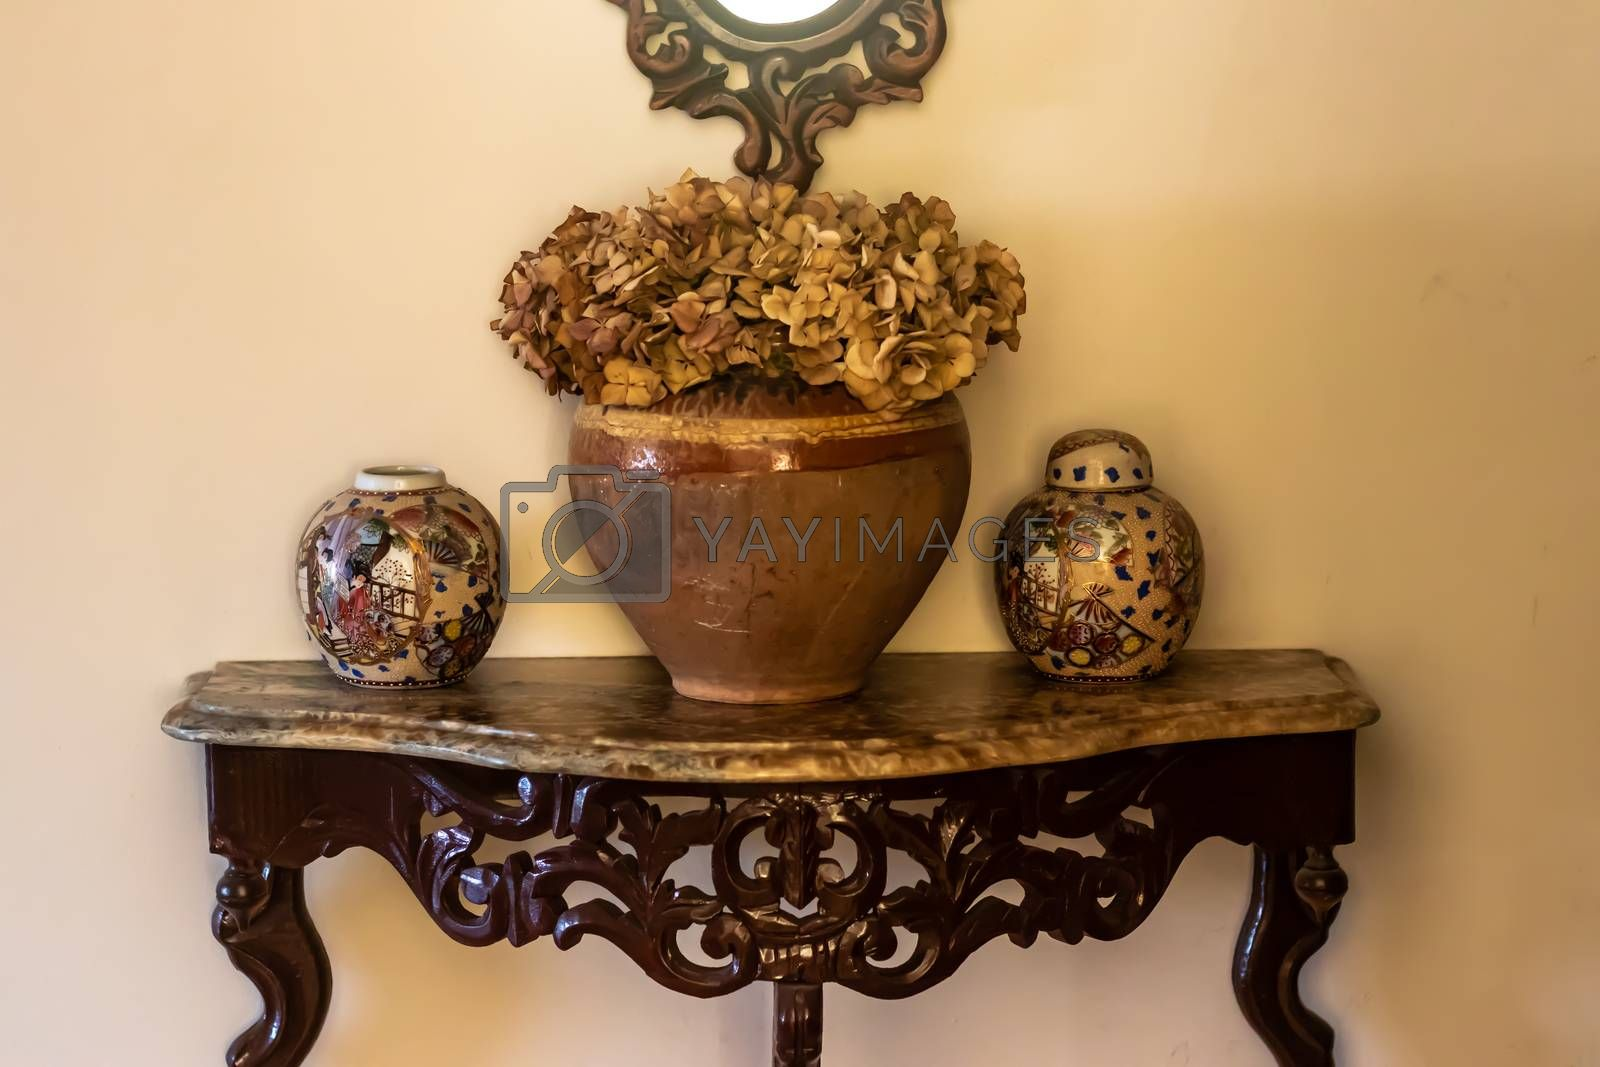 yellow color dominated good composed shoot from some antique items. there is some vases, containers and table.